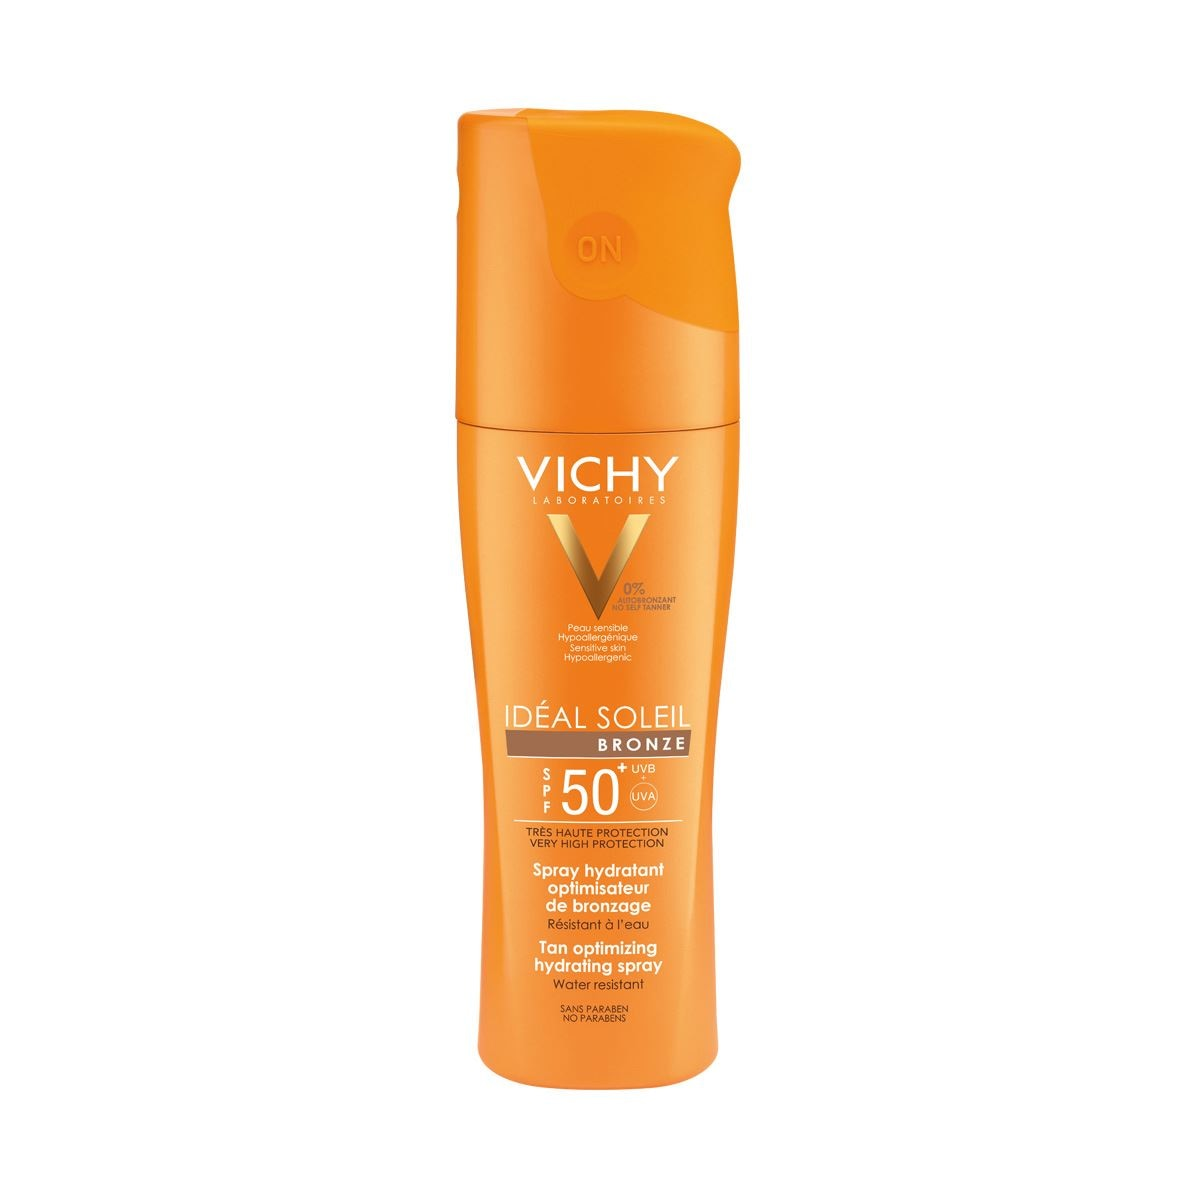 Vichy ideal soleil  spray corps ip50+ 200ml  - Sanborns